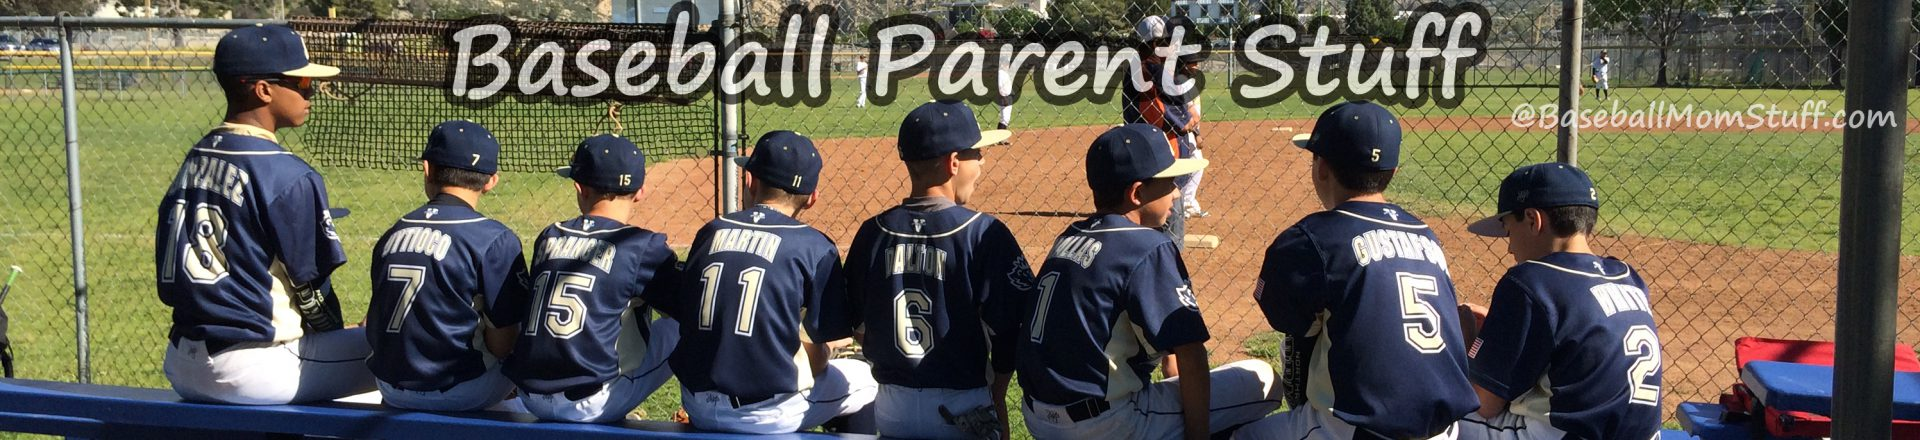 6 Life Lessons For Teens to Learn From Baseball